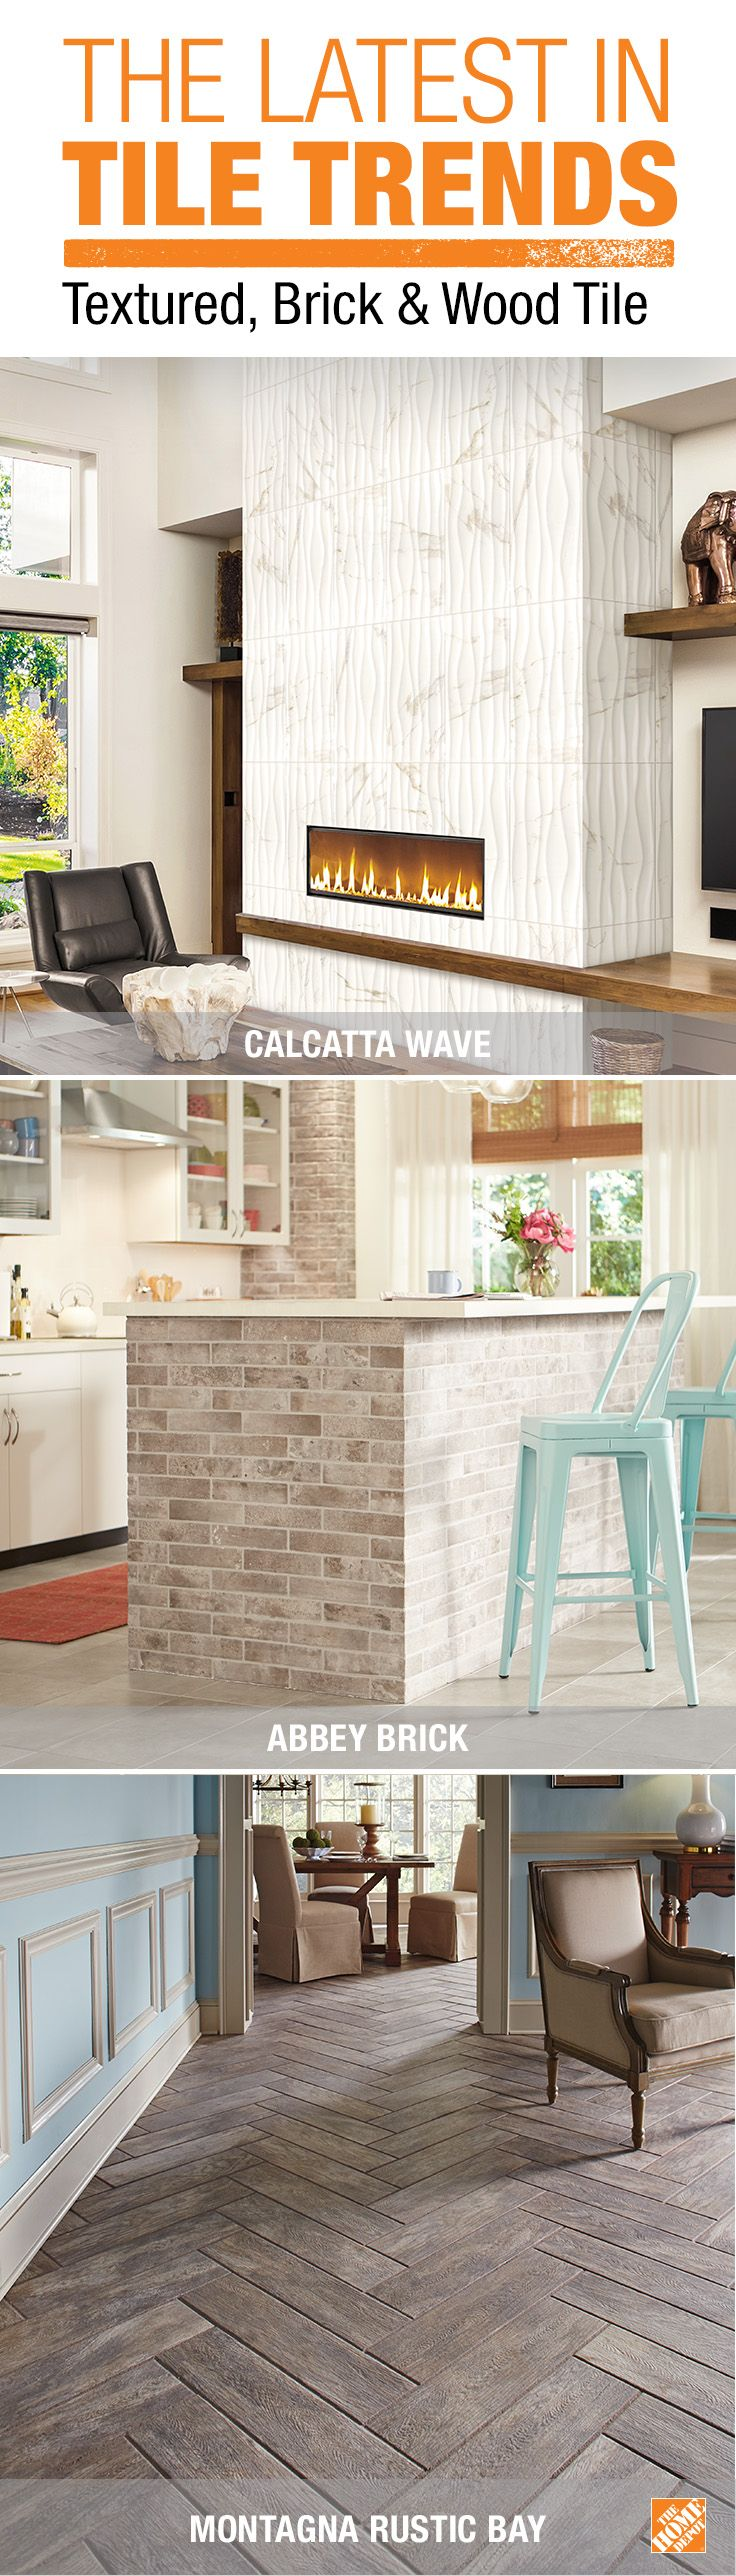 Check out the latest tile trends for your next home improvement project. Wave is a unique texture that enhances the look of any room. Brick-look tile creates a classic look without the weight of real bricks. And popular wood-look tile offers natural-looking grain with the durability and water resistance of tile. See more about these and other innovative tile trends at The Home Depot.